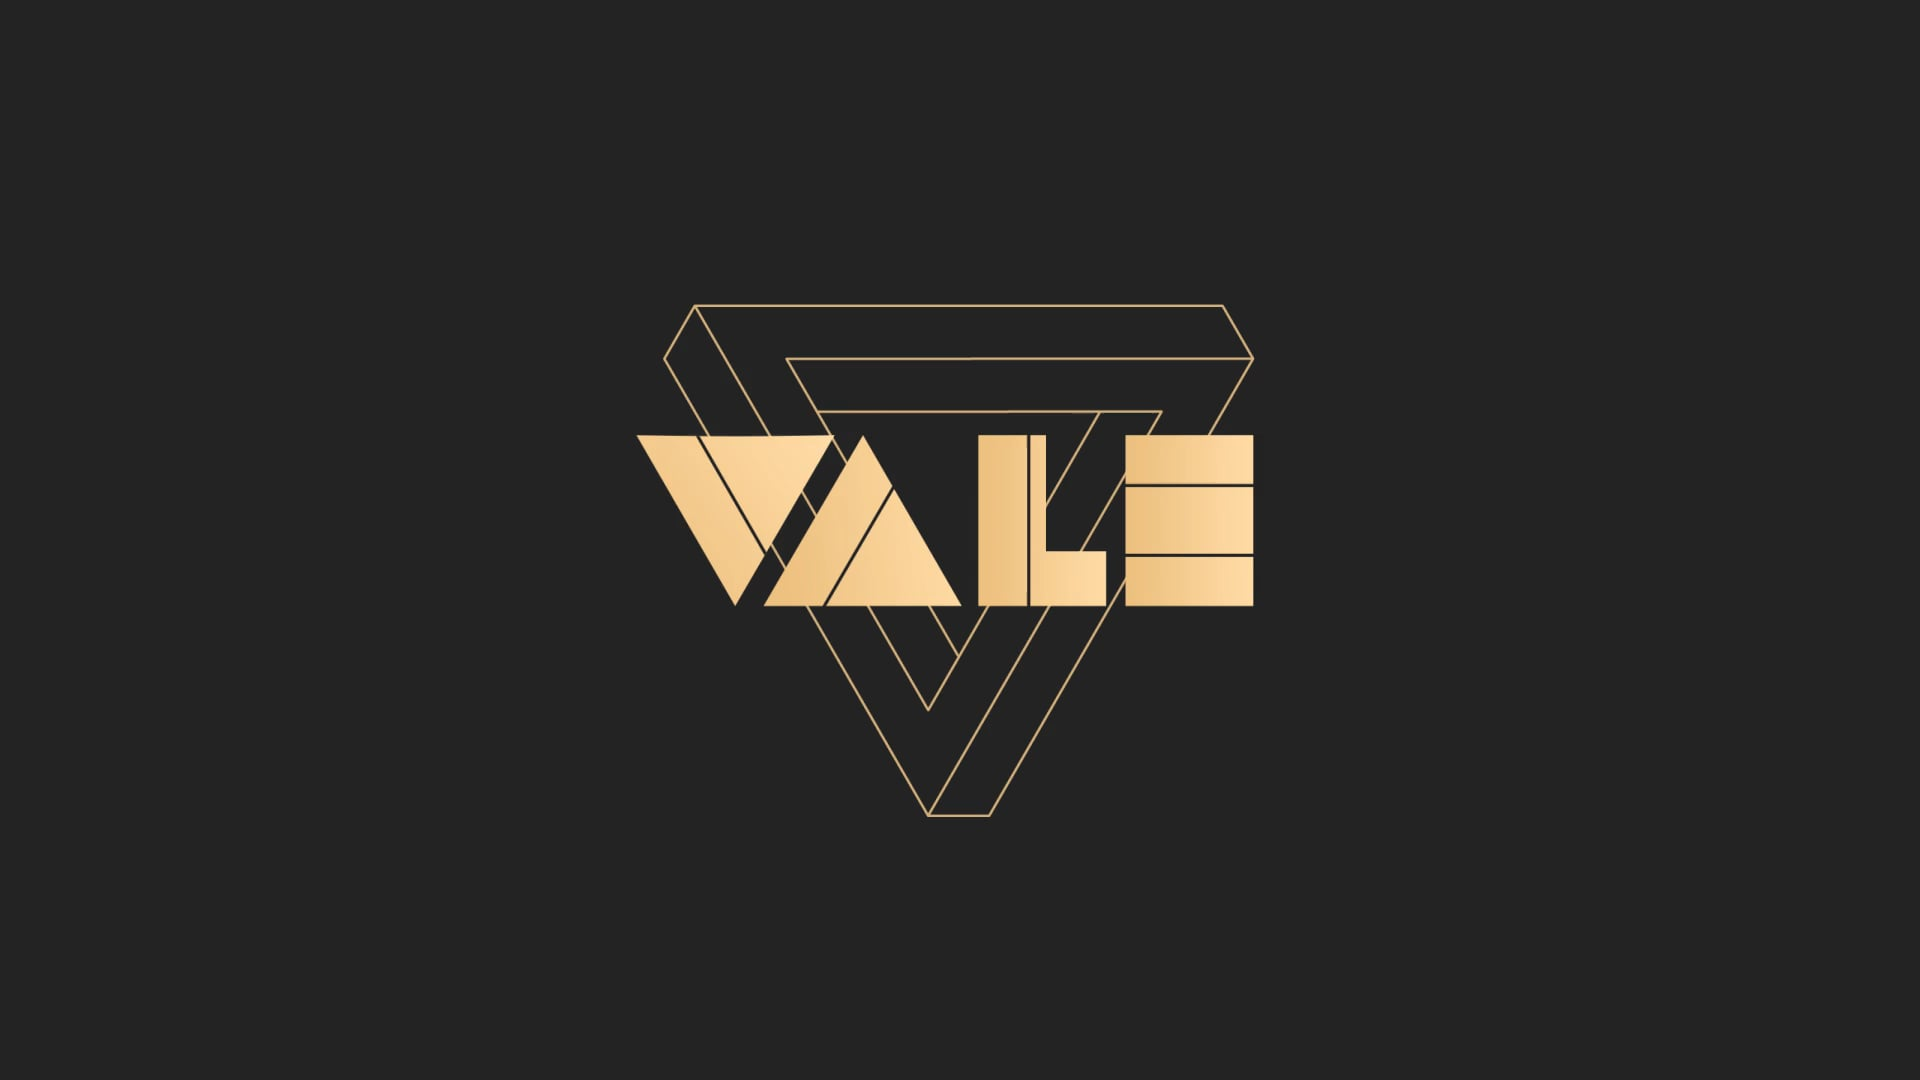 VALE ∇ Reel 2018 (ANIMATION & MOTION GRAPHICS)